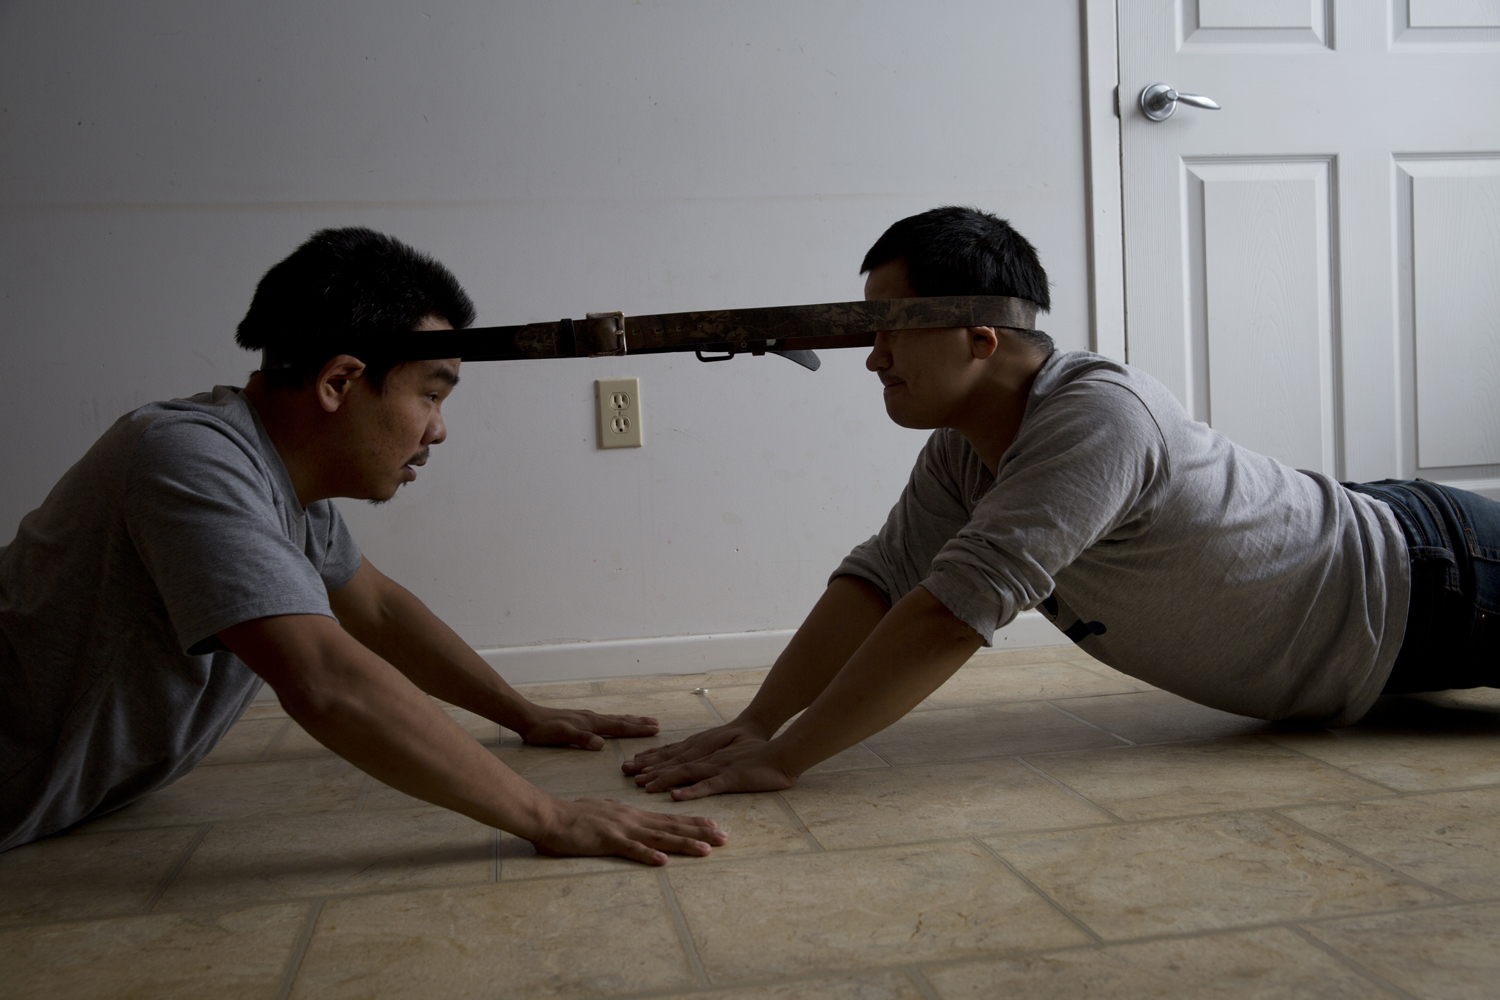 Arviat, Canada, Oct. 16, 2013. William Tiktaq (left), 28, and Brian Tagalik (right), 28, compete with each other in an Inuit head pull competition. Inuit games are played as a way to pass the time during the cold arctic winters and to test and develop the skills required for hunting and arctic survival.